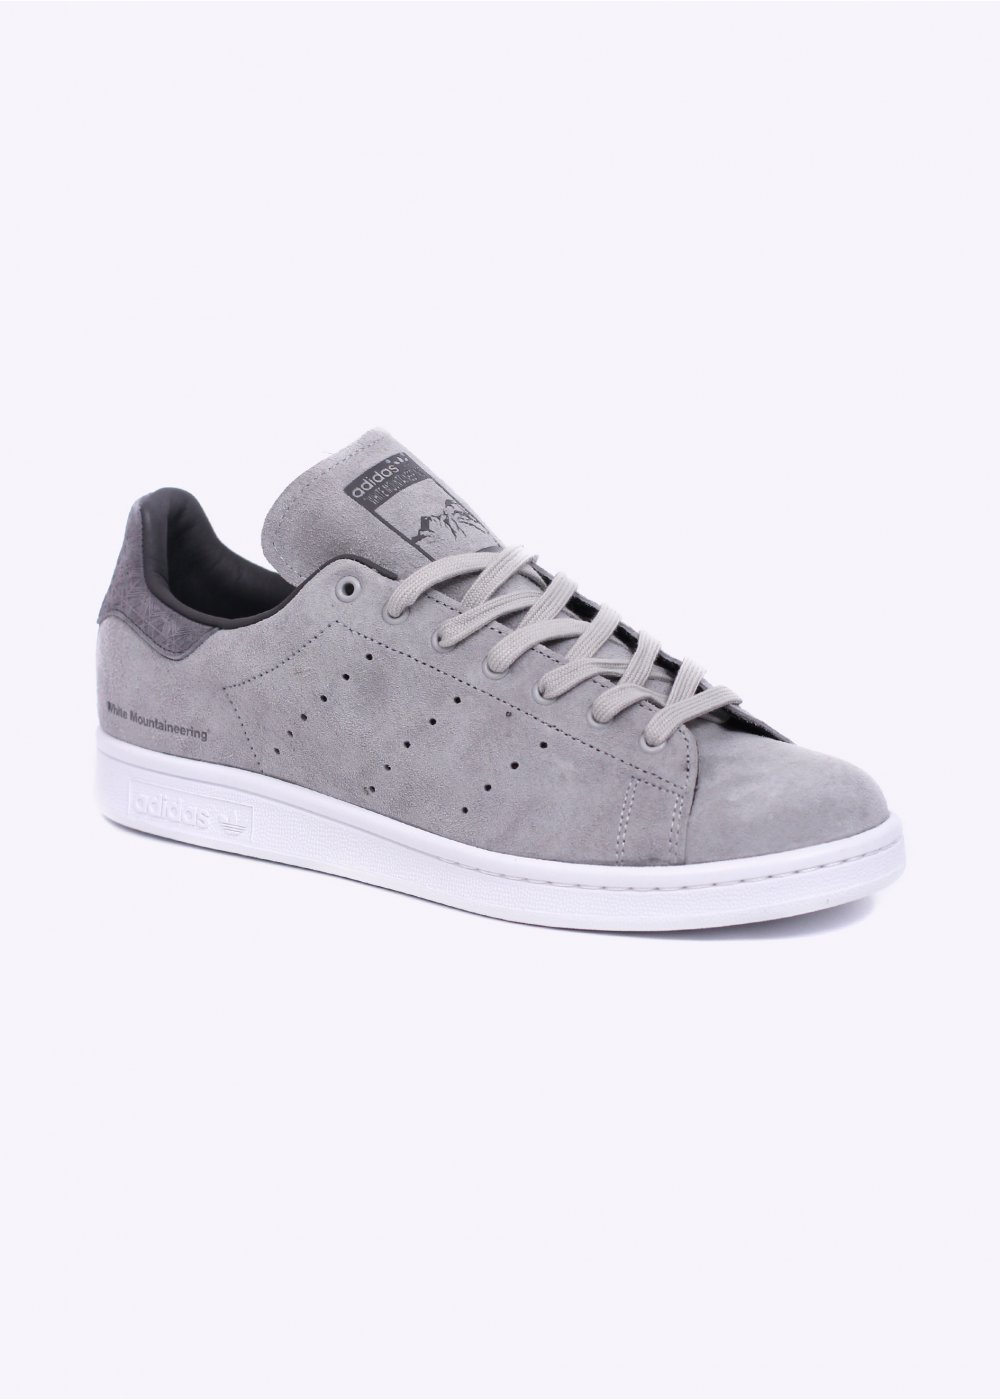 new style b67a4 c07b3 adidas Originals Footwear x White Mountaineering Stan Smith Trainers - Onix  / White